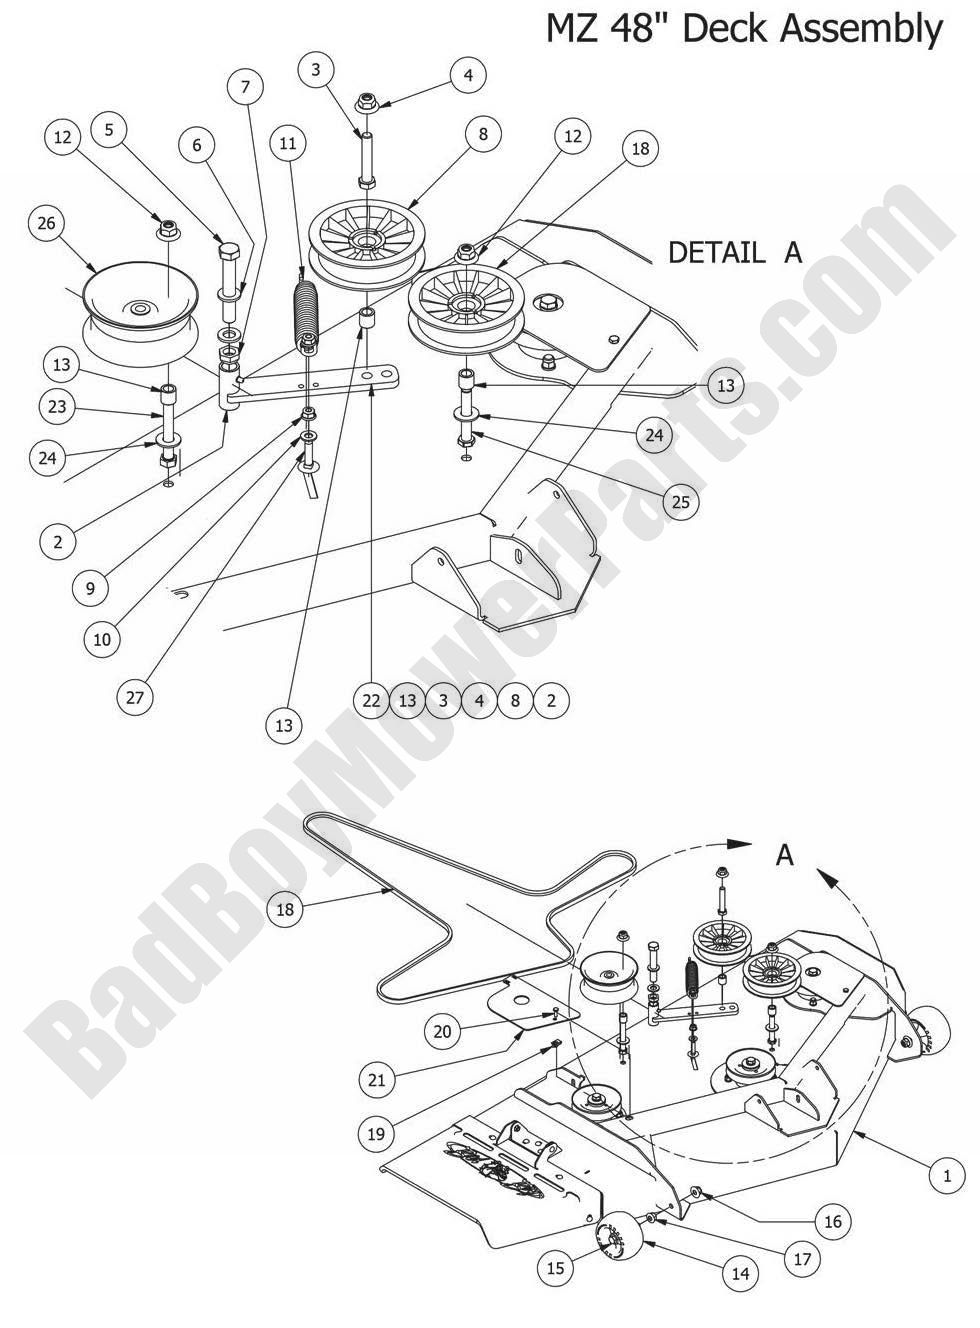 Bad Boy Mower Wiring Diagram Auto Electrical 2009 Mazda 3 Accessory 2010 Mz Kawasaki 22 Hp 45